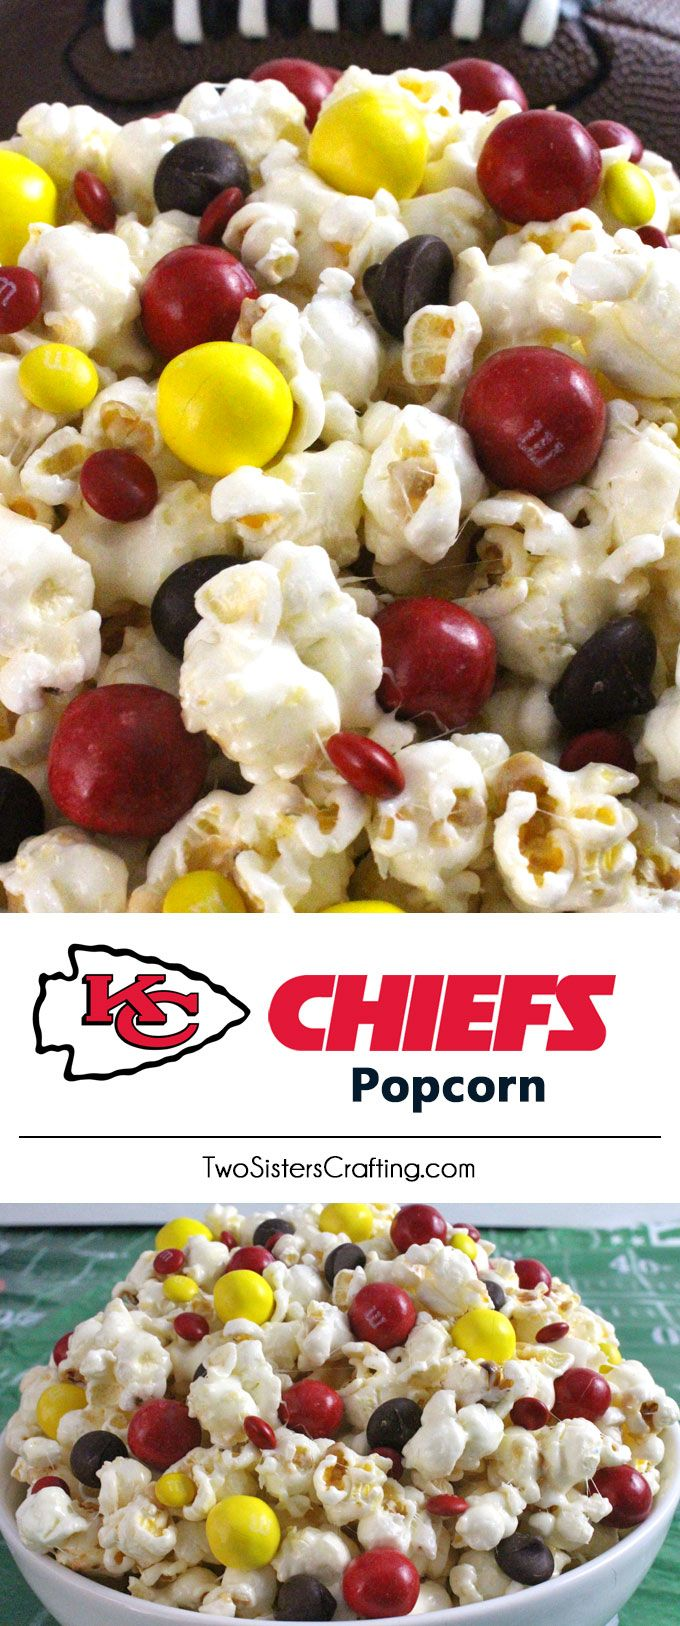 Kansas City Chiefs Popcorn - Two Sisters